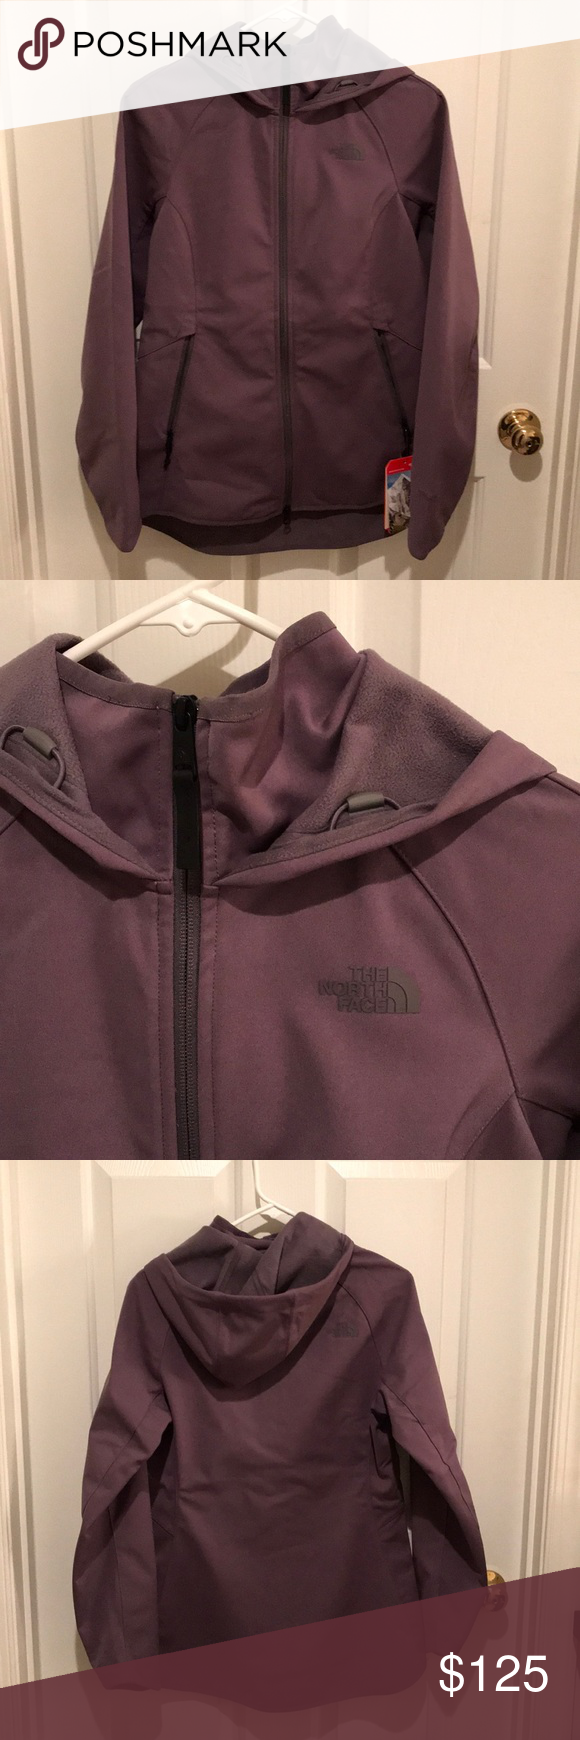 5483b112b NWT The North Face Womens Apex Lilmore Parka Brand new with tags ...